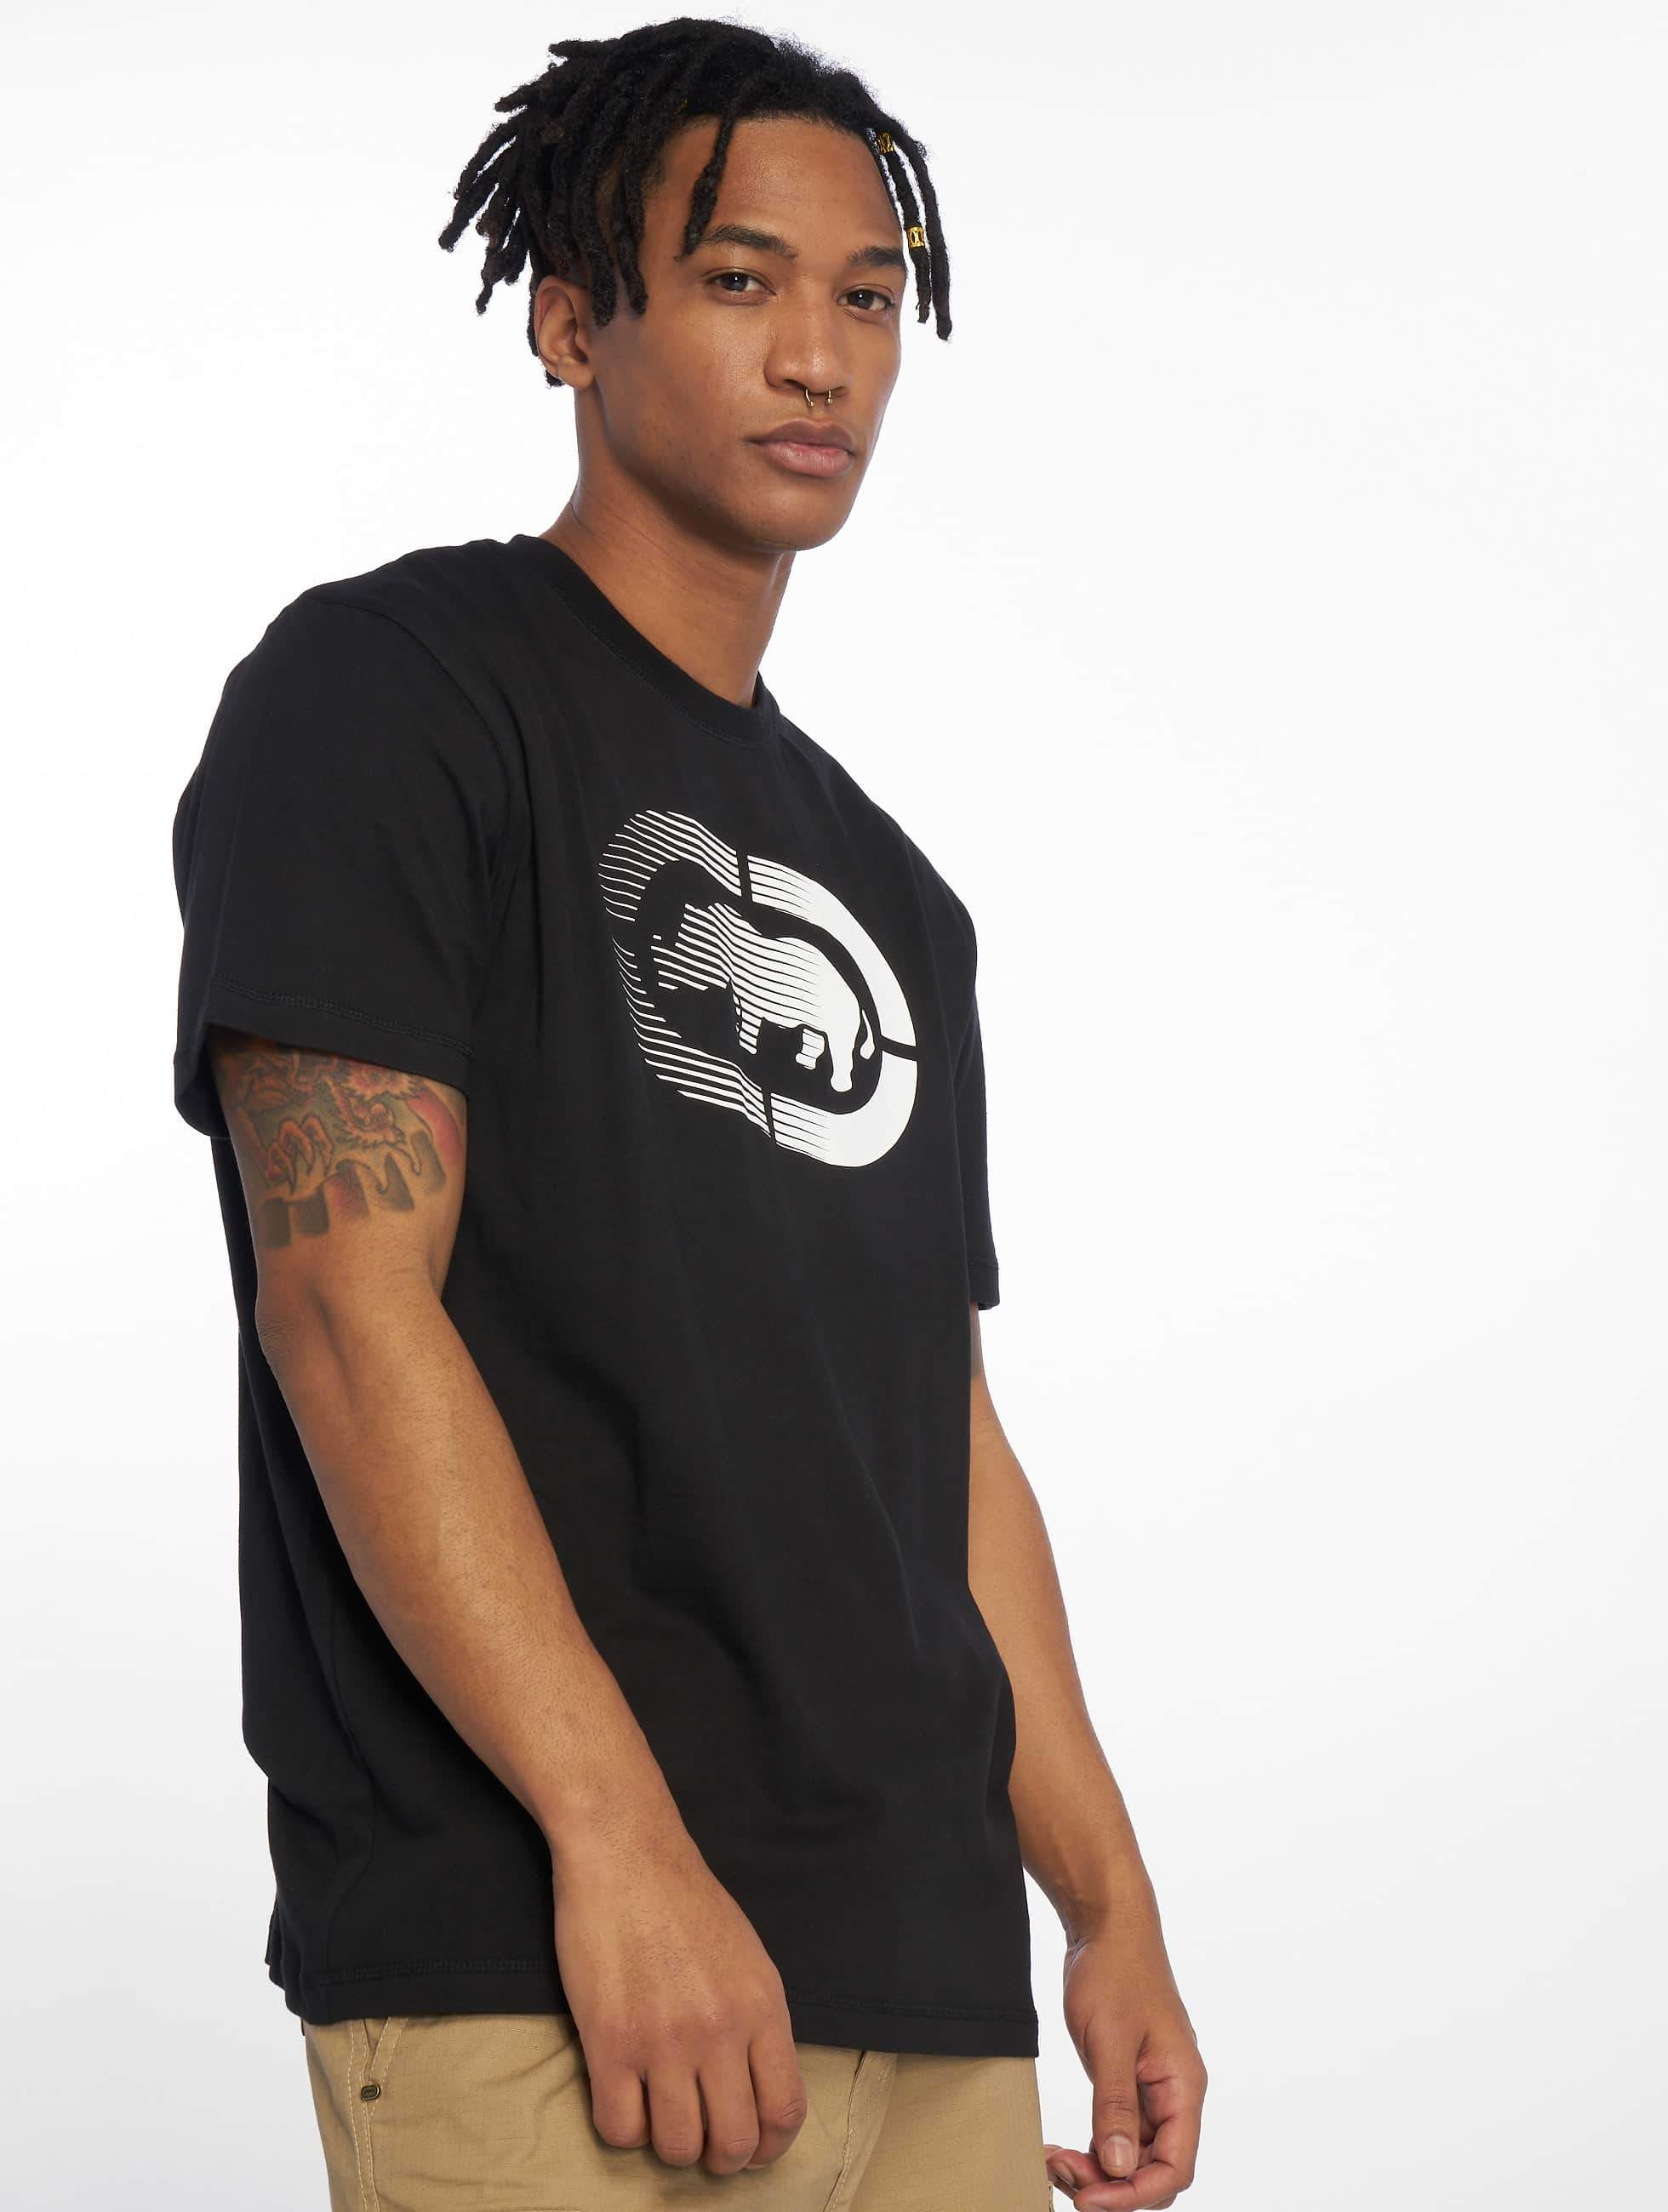 Ecko Unltd. / T-Shirt 5050 in black XL